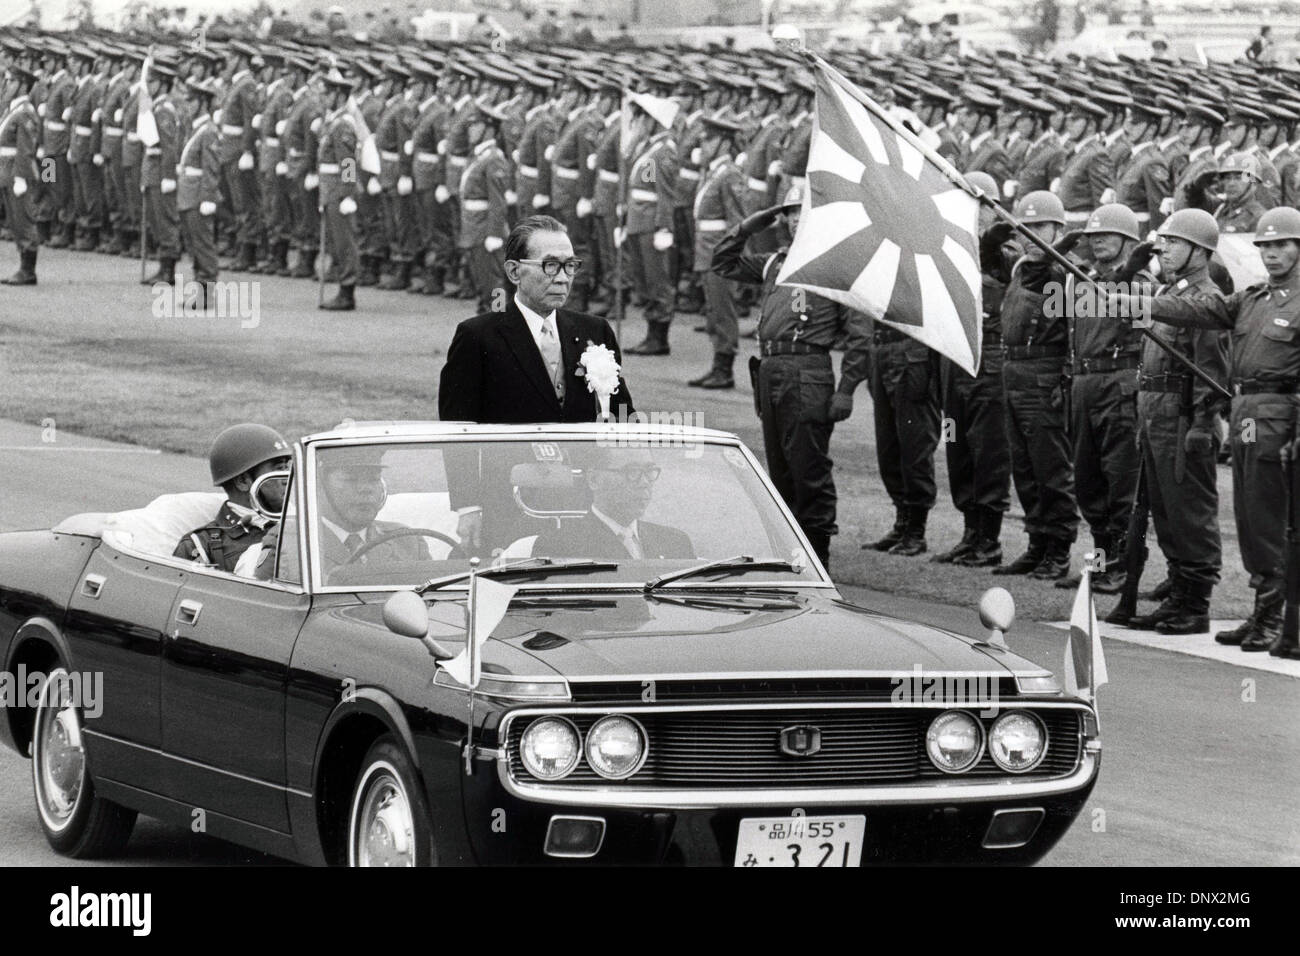 Oct 05, 1975 - Tokyo, Japan - Prime Minister of Japan TAKEO MIKI reviews troops from his car during an examination of the Japanese military. Exact date unknown. (Credit Image: © KEYSTONE Pictures/ZUMAPRESS.com) - Stock Image